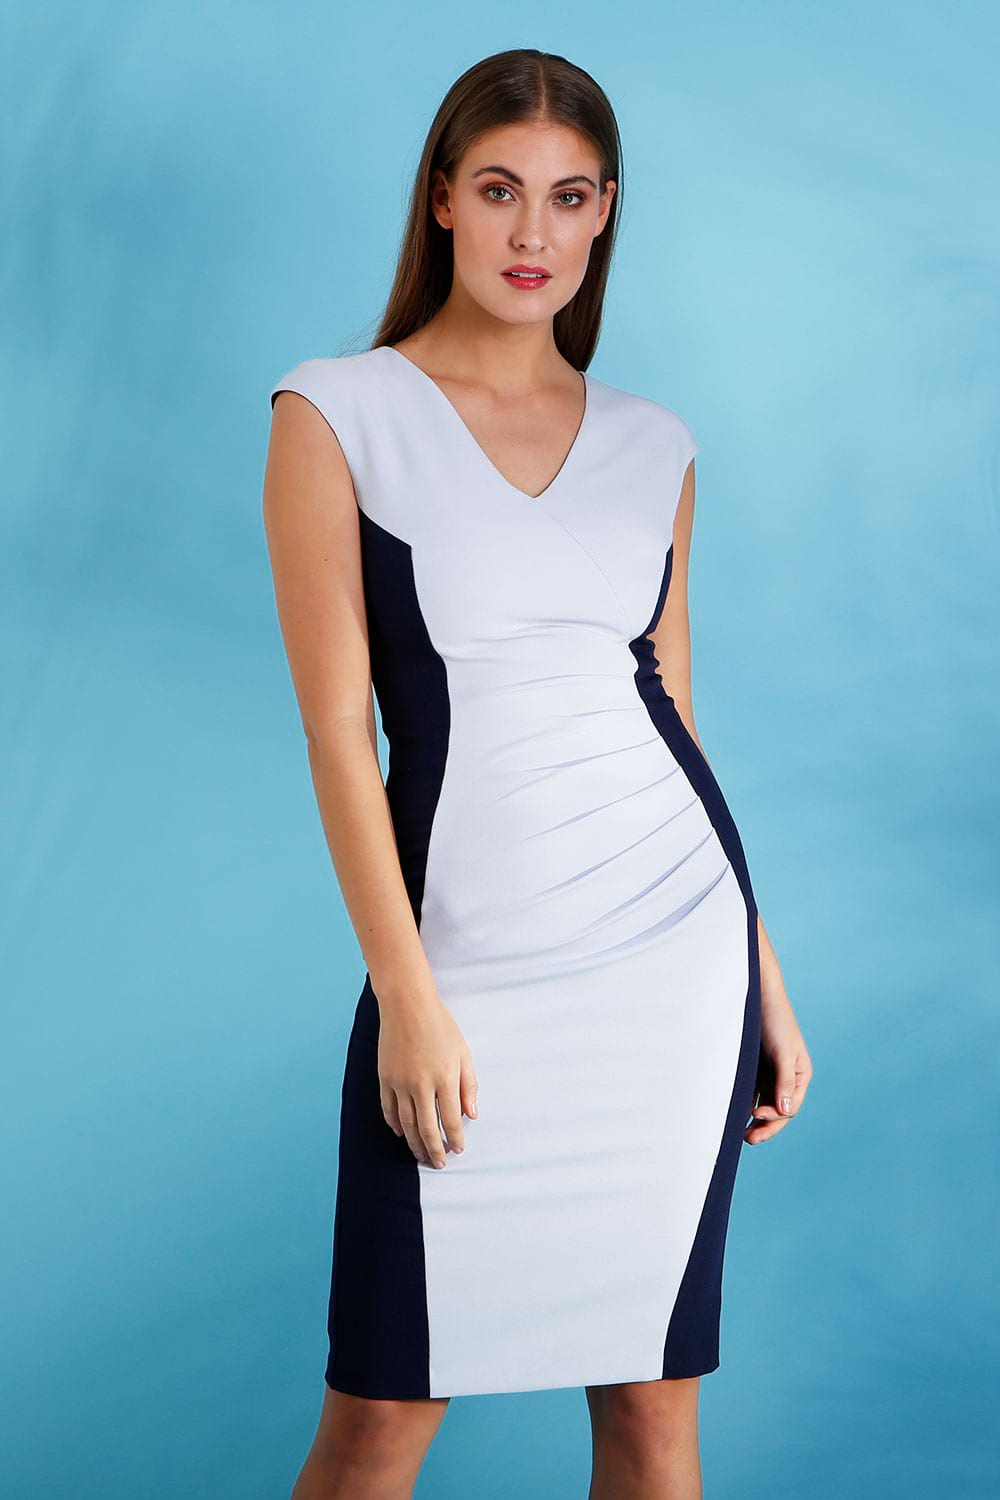 Hybrid Fashion 1282 Portia Contrast Panel Pencil Dress